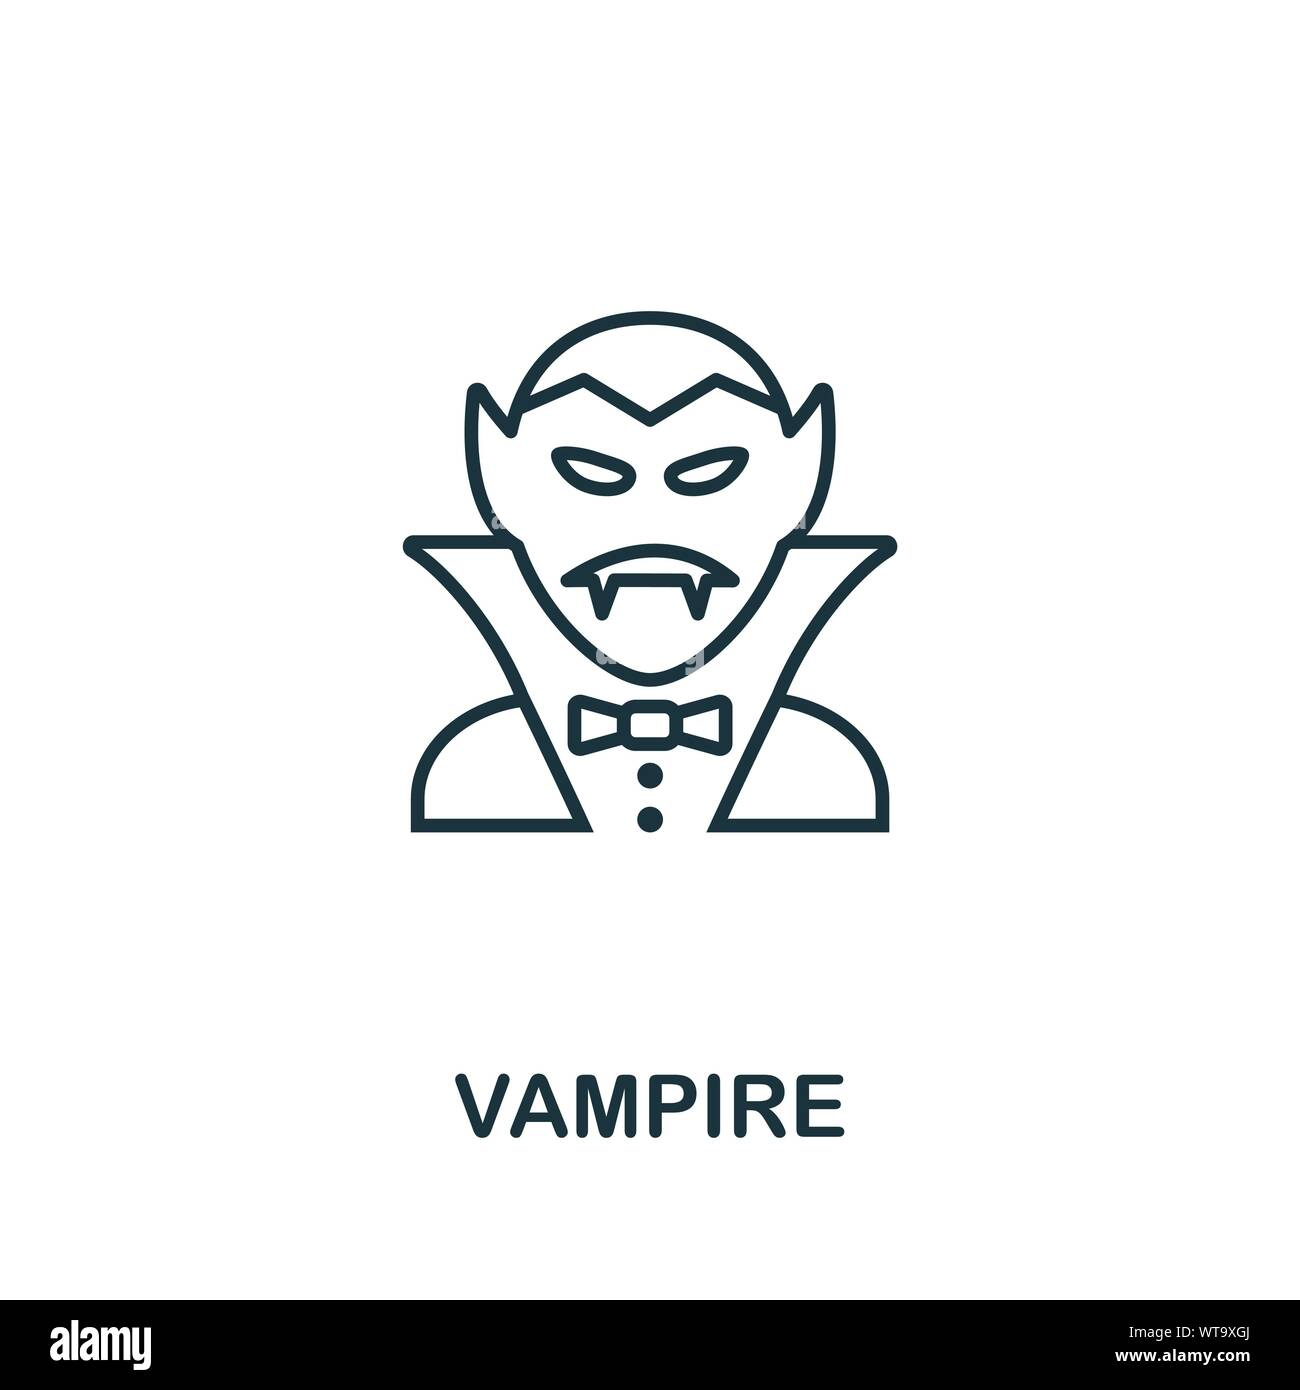 Vampire Outline Icon Thin Line Style From Halloween Icons